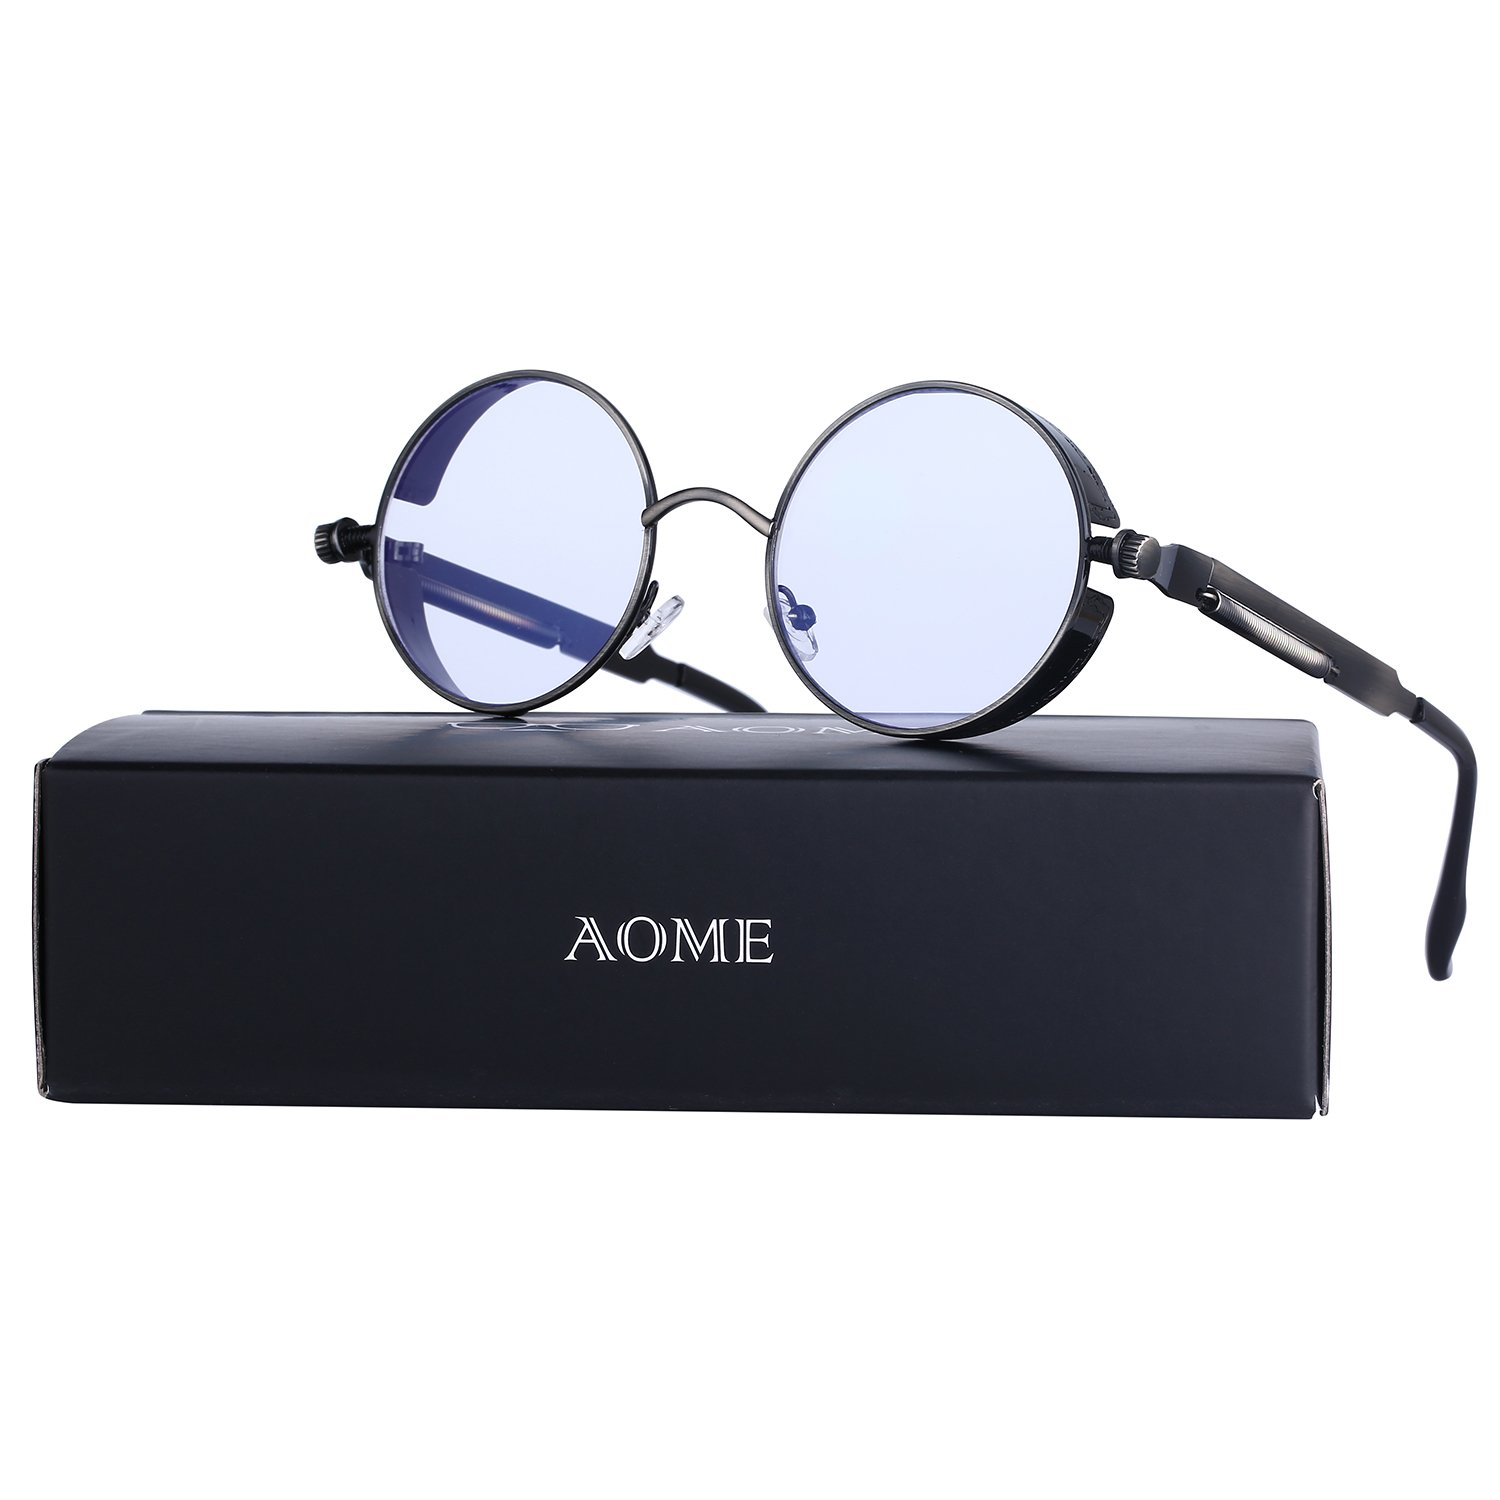 AOME Gothic Steampunk Round Sunglasses Metal Frame Mirrored Circle Lens Glasses (Bronze&Clear, 1.9)